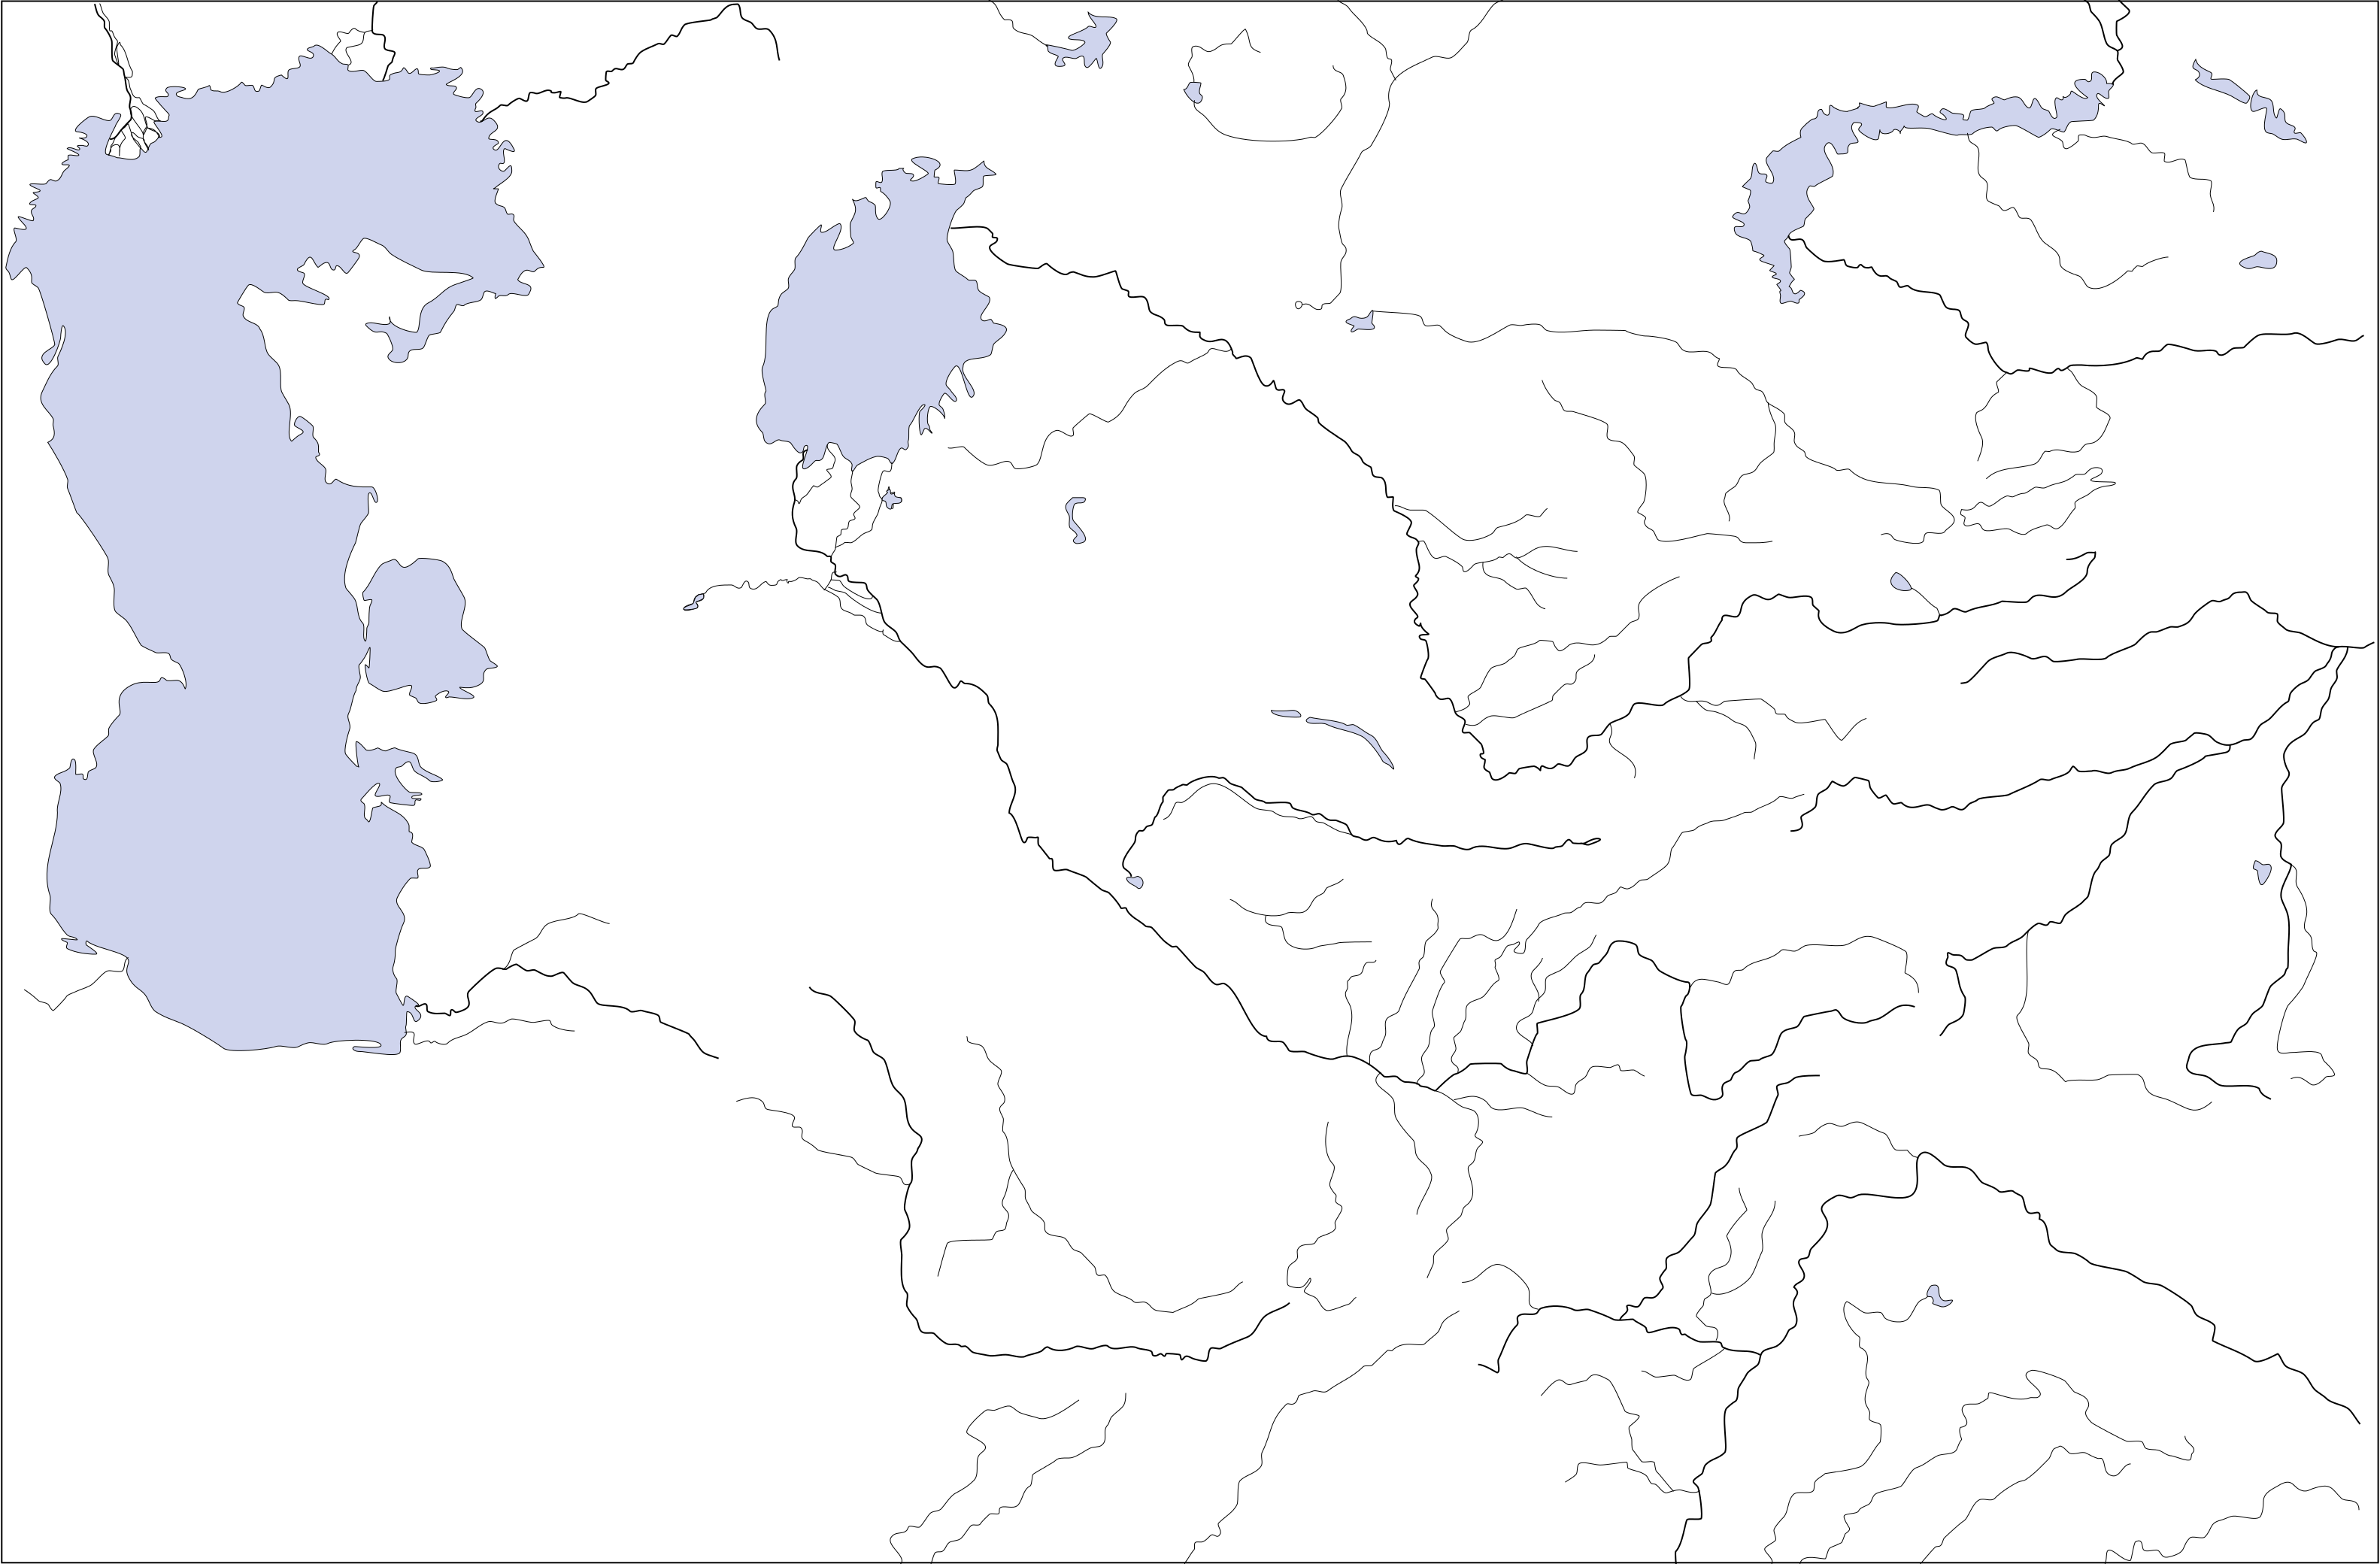 template map of central asia by zalezsky on deviantart